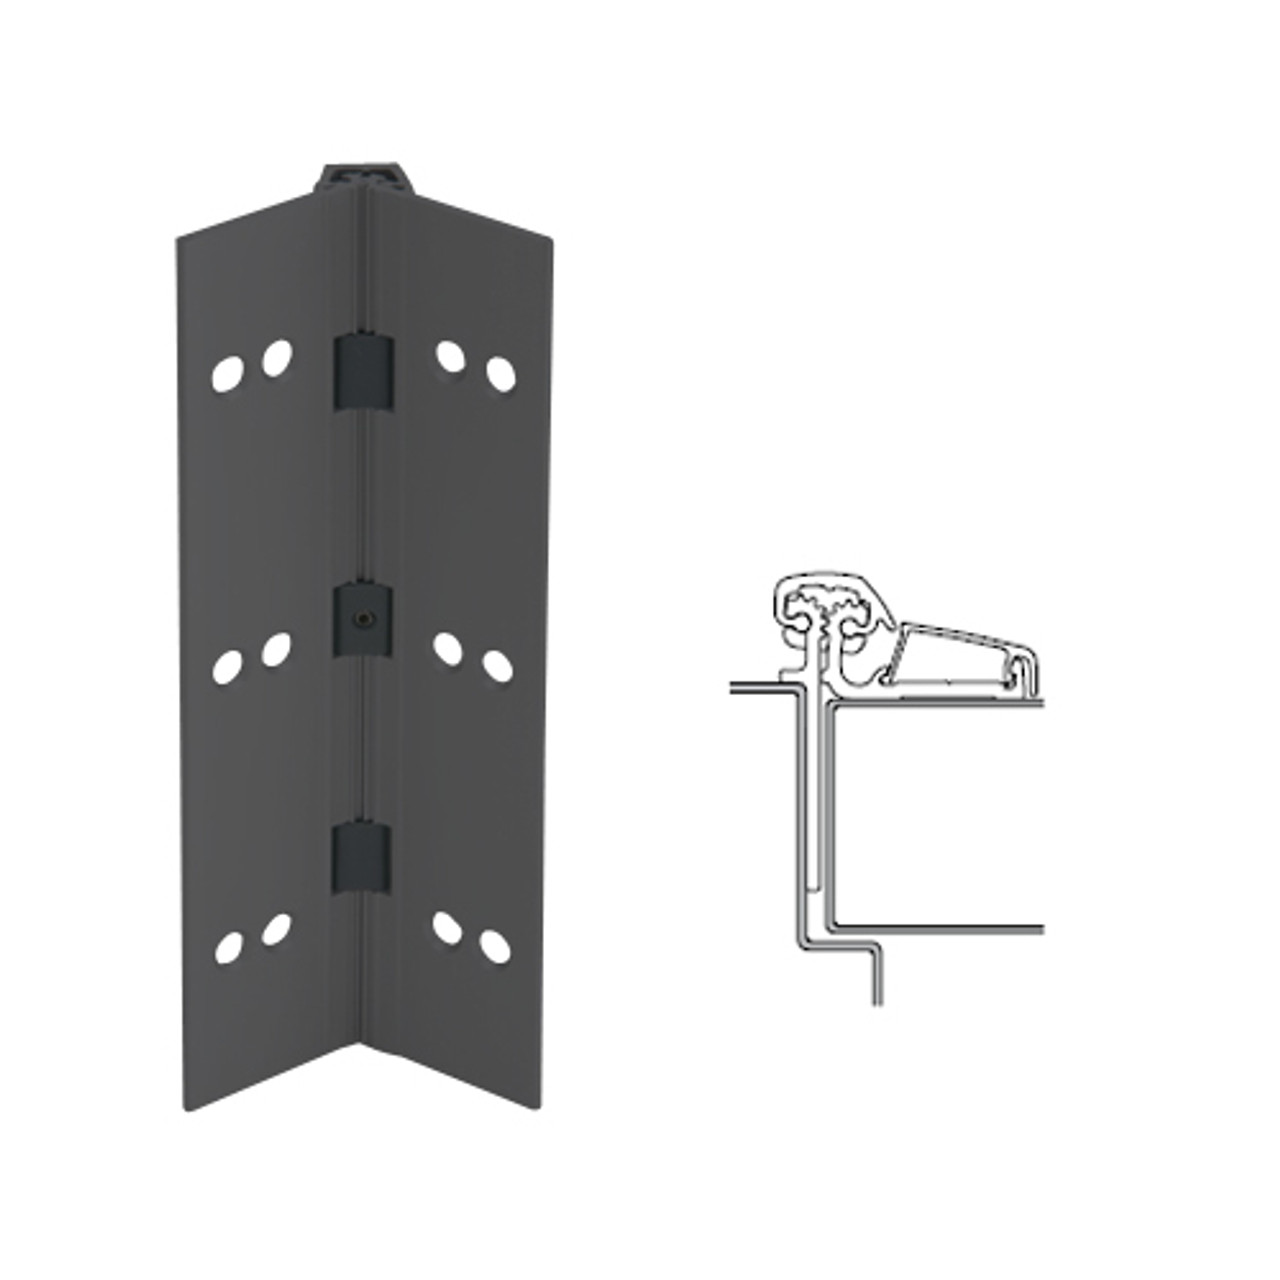 053XY-315AN-95-TF IVES Adjustable Half Surface Continuous Geared Hinges with Thread Forming Screws in Anodized Black